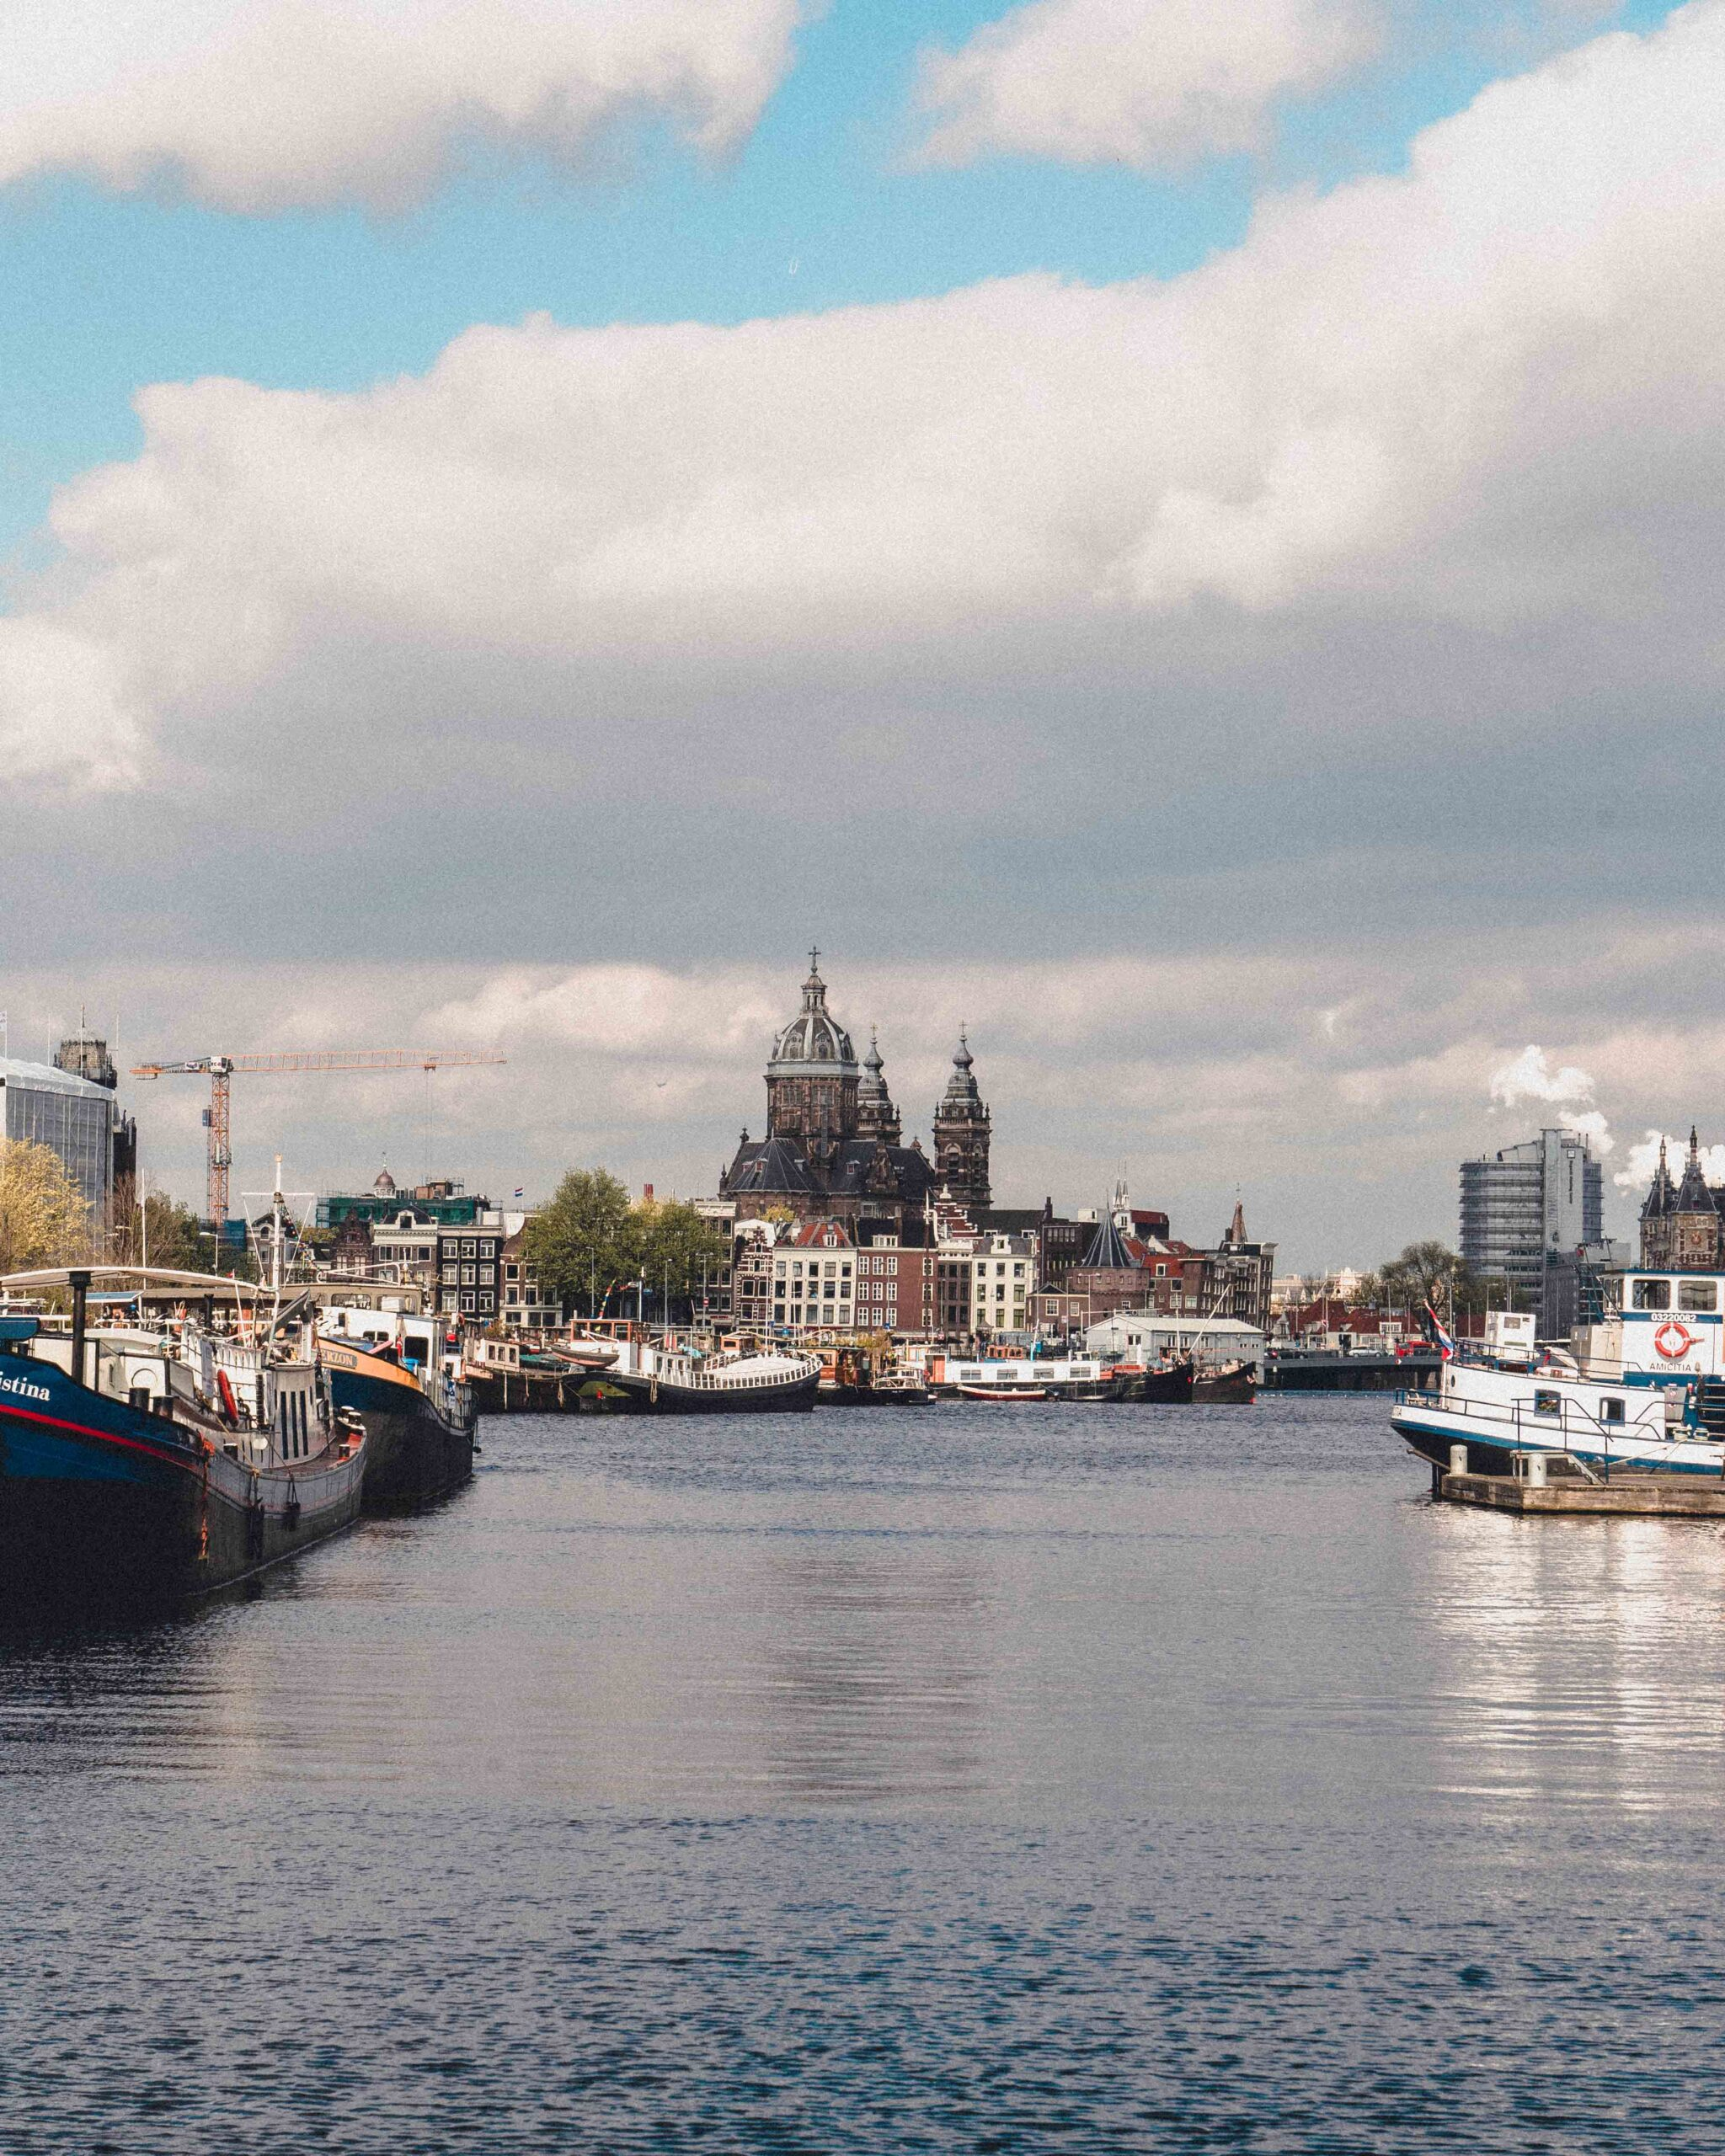 Looking for quirky, unusual, and unique accommodation in Amsterdam? Here's how you can stay on a boat in Amsterdam and experience houseboat life for yourself!